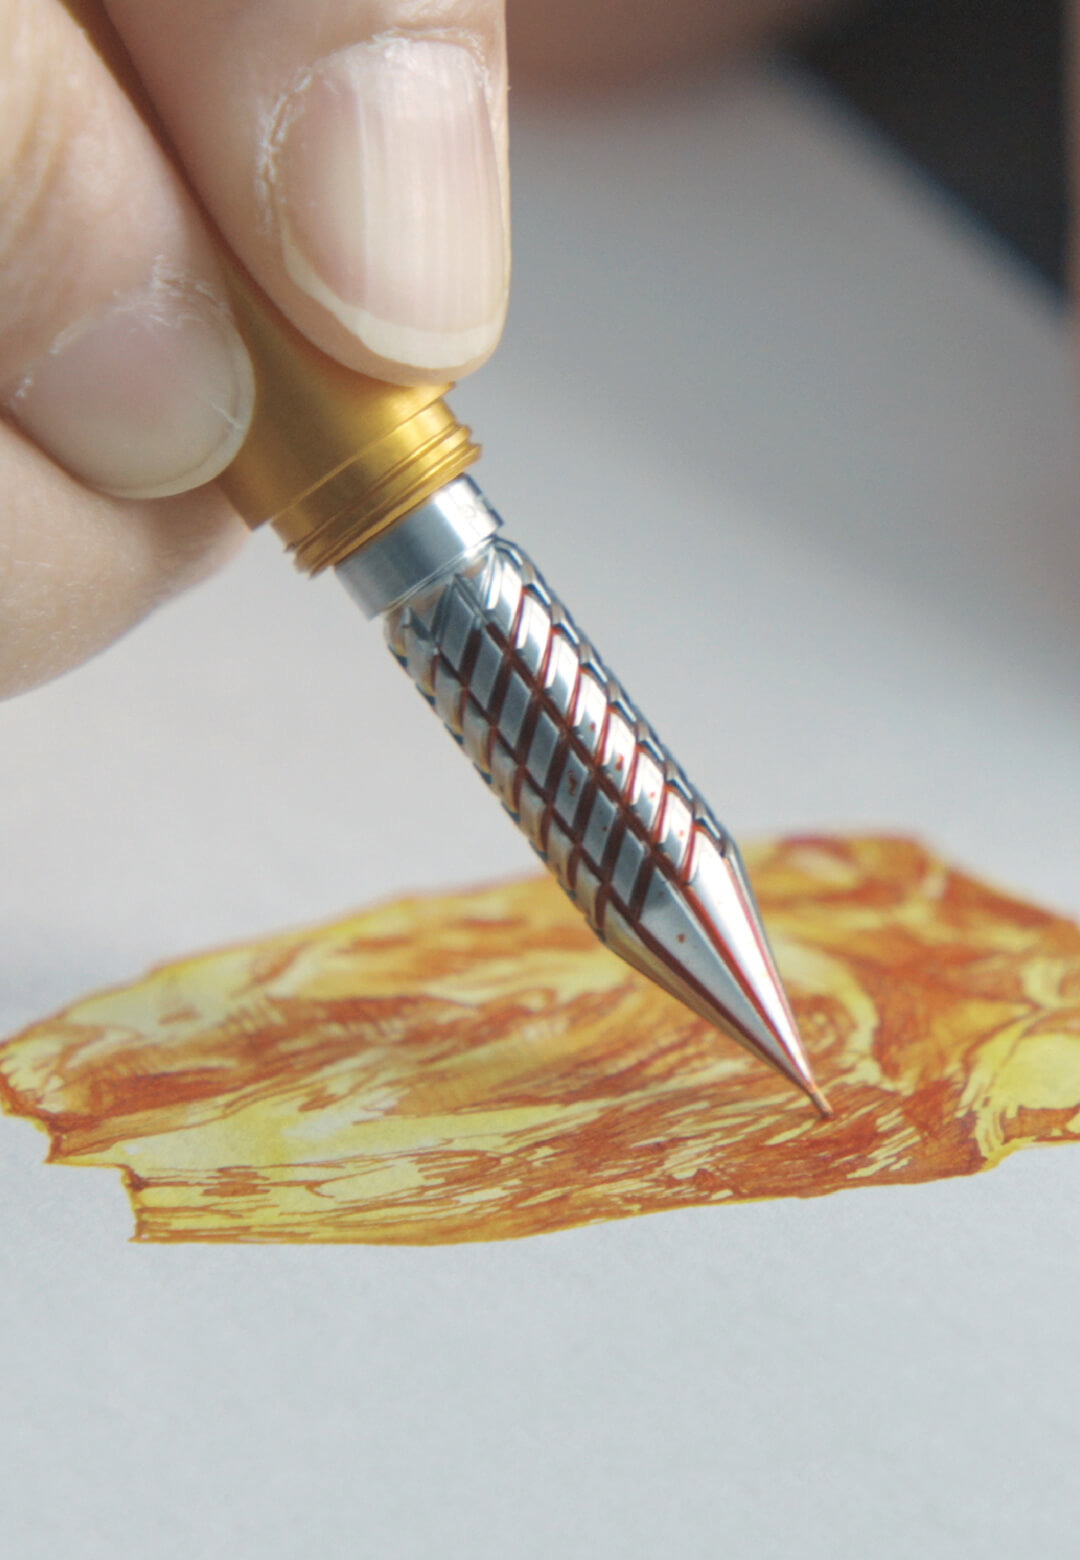 Drillog by Shion Co. Ltd. is a drill tipped pen that can be dipped in ink | Drillog | Shion Co. Ltd. | STIRworld